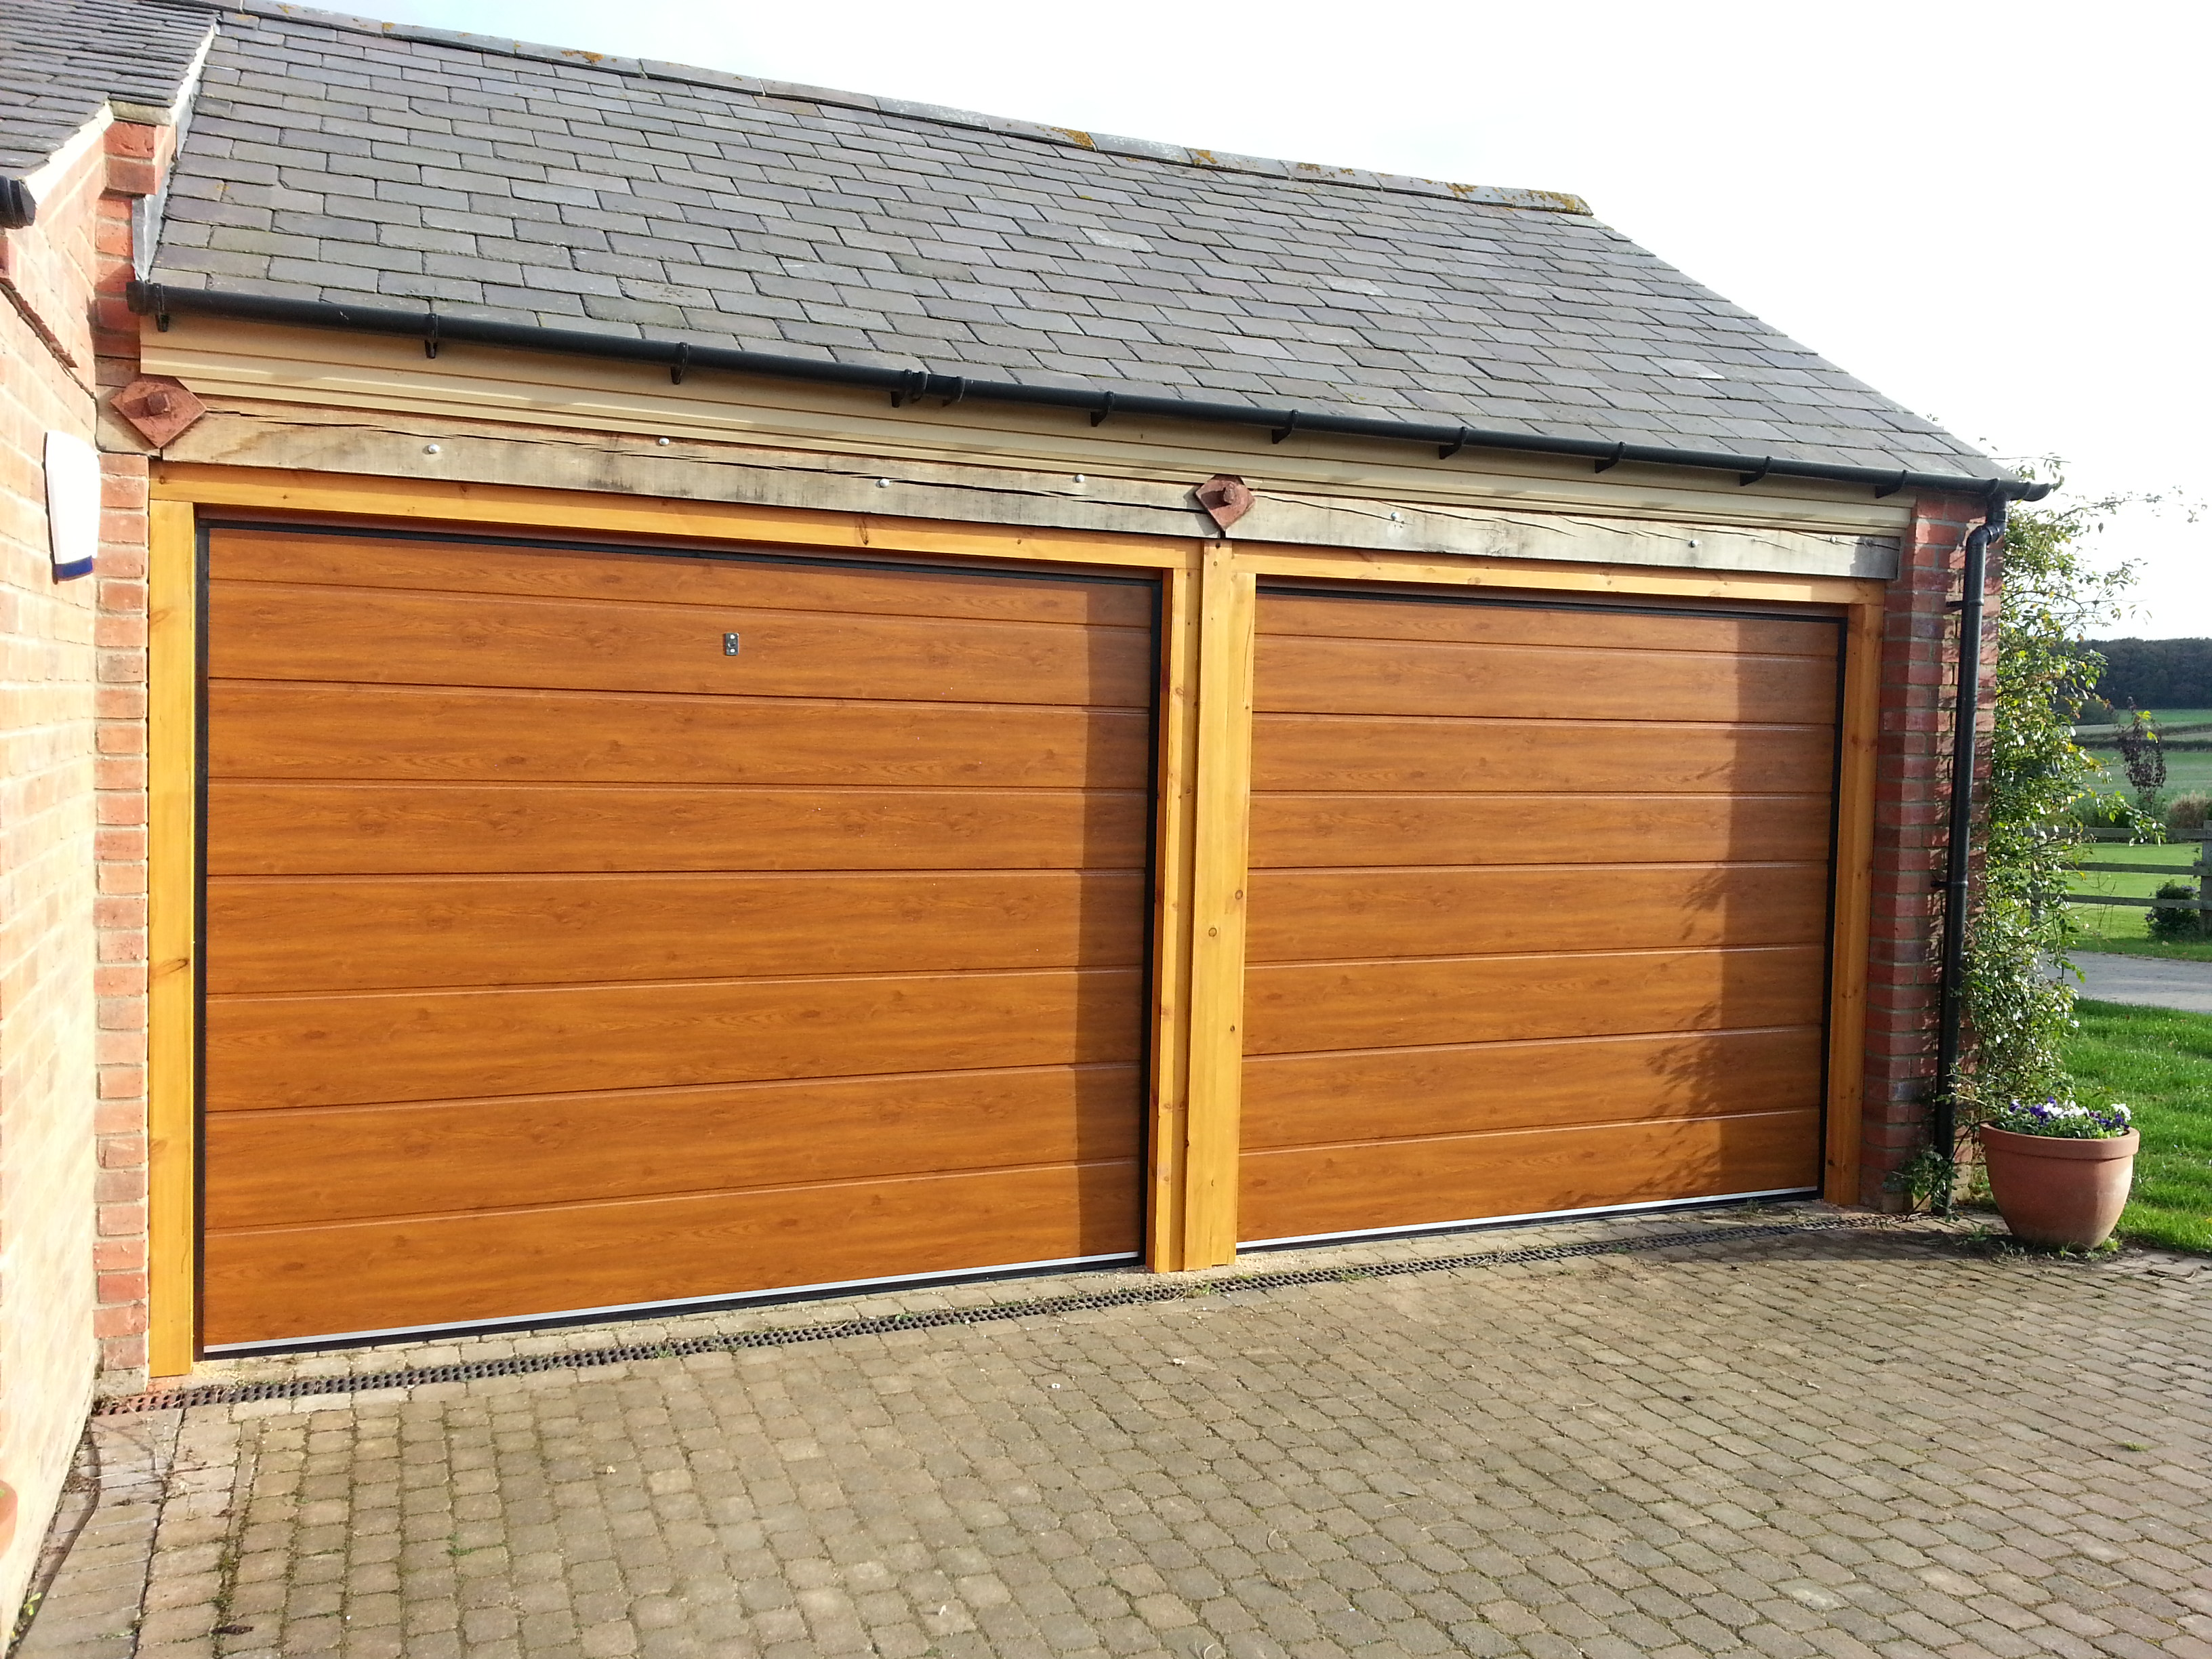 New garage doors grantham the garage door company for New garage